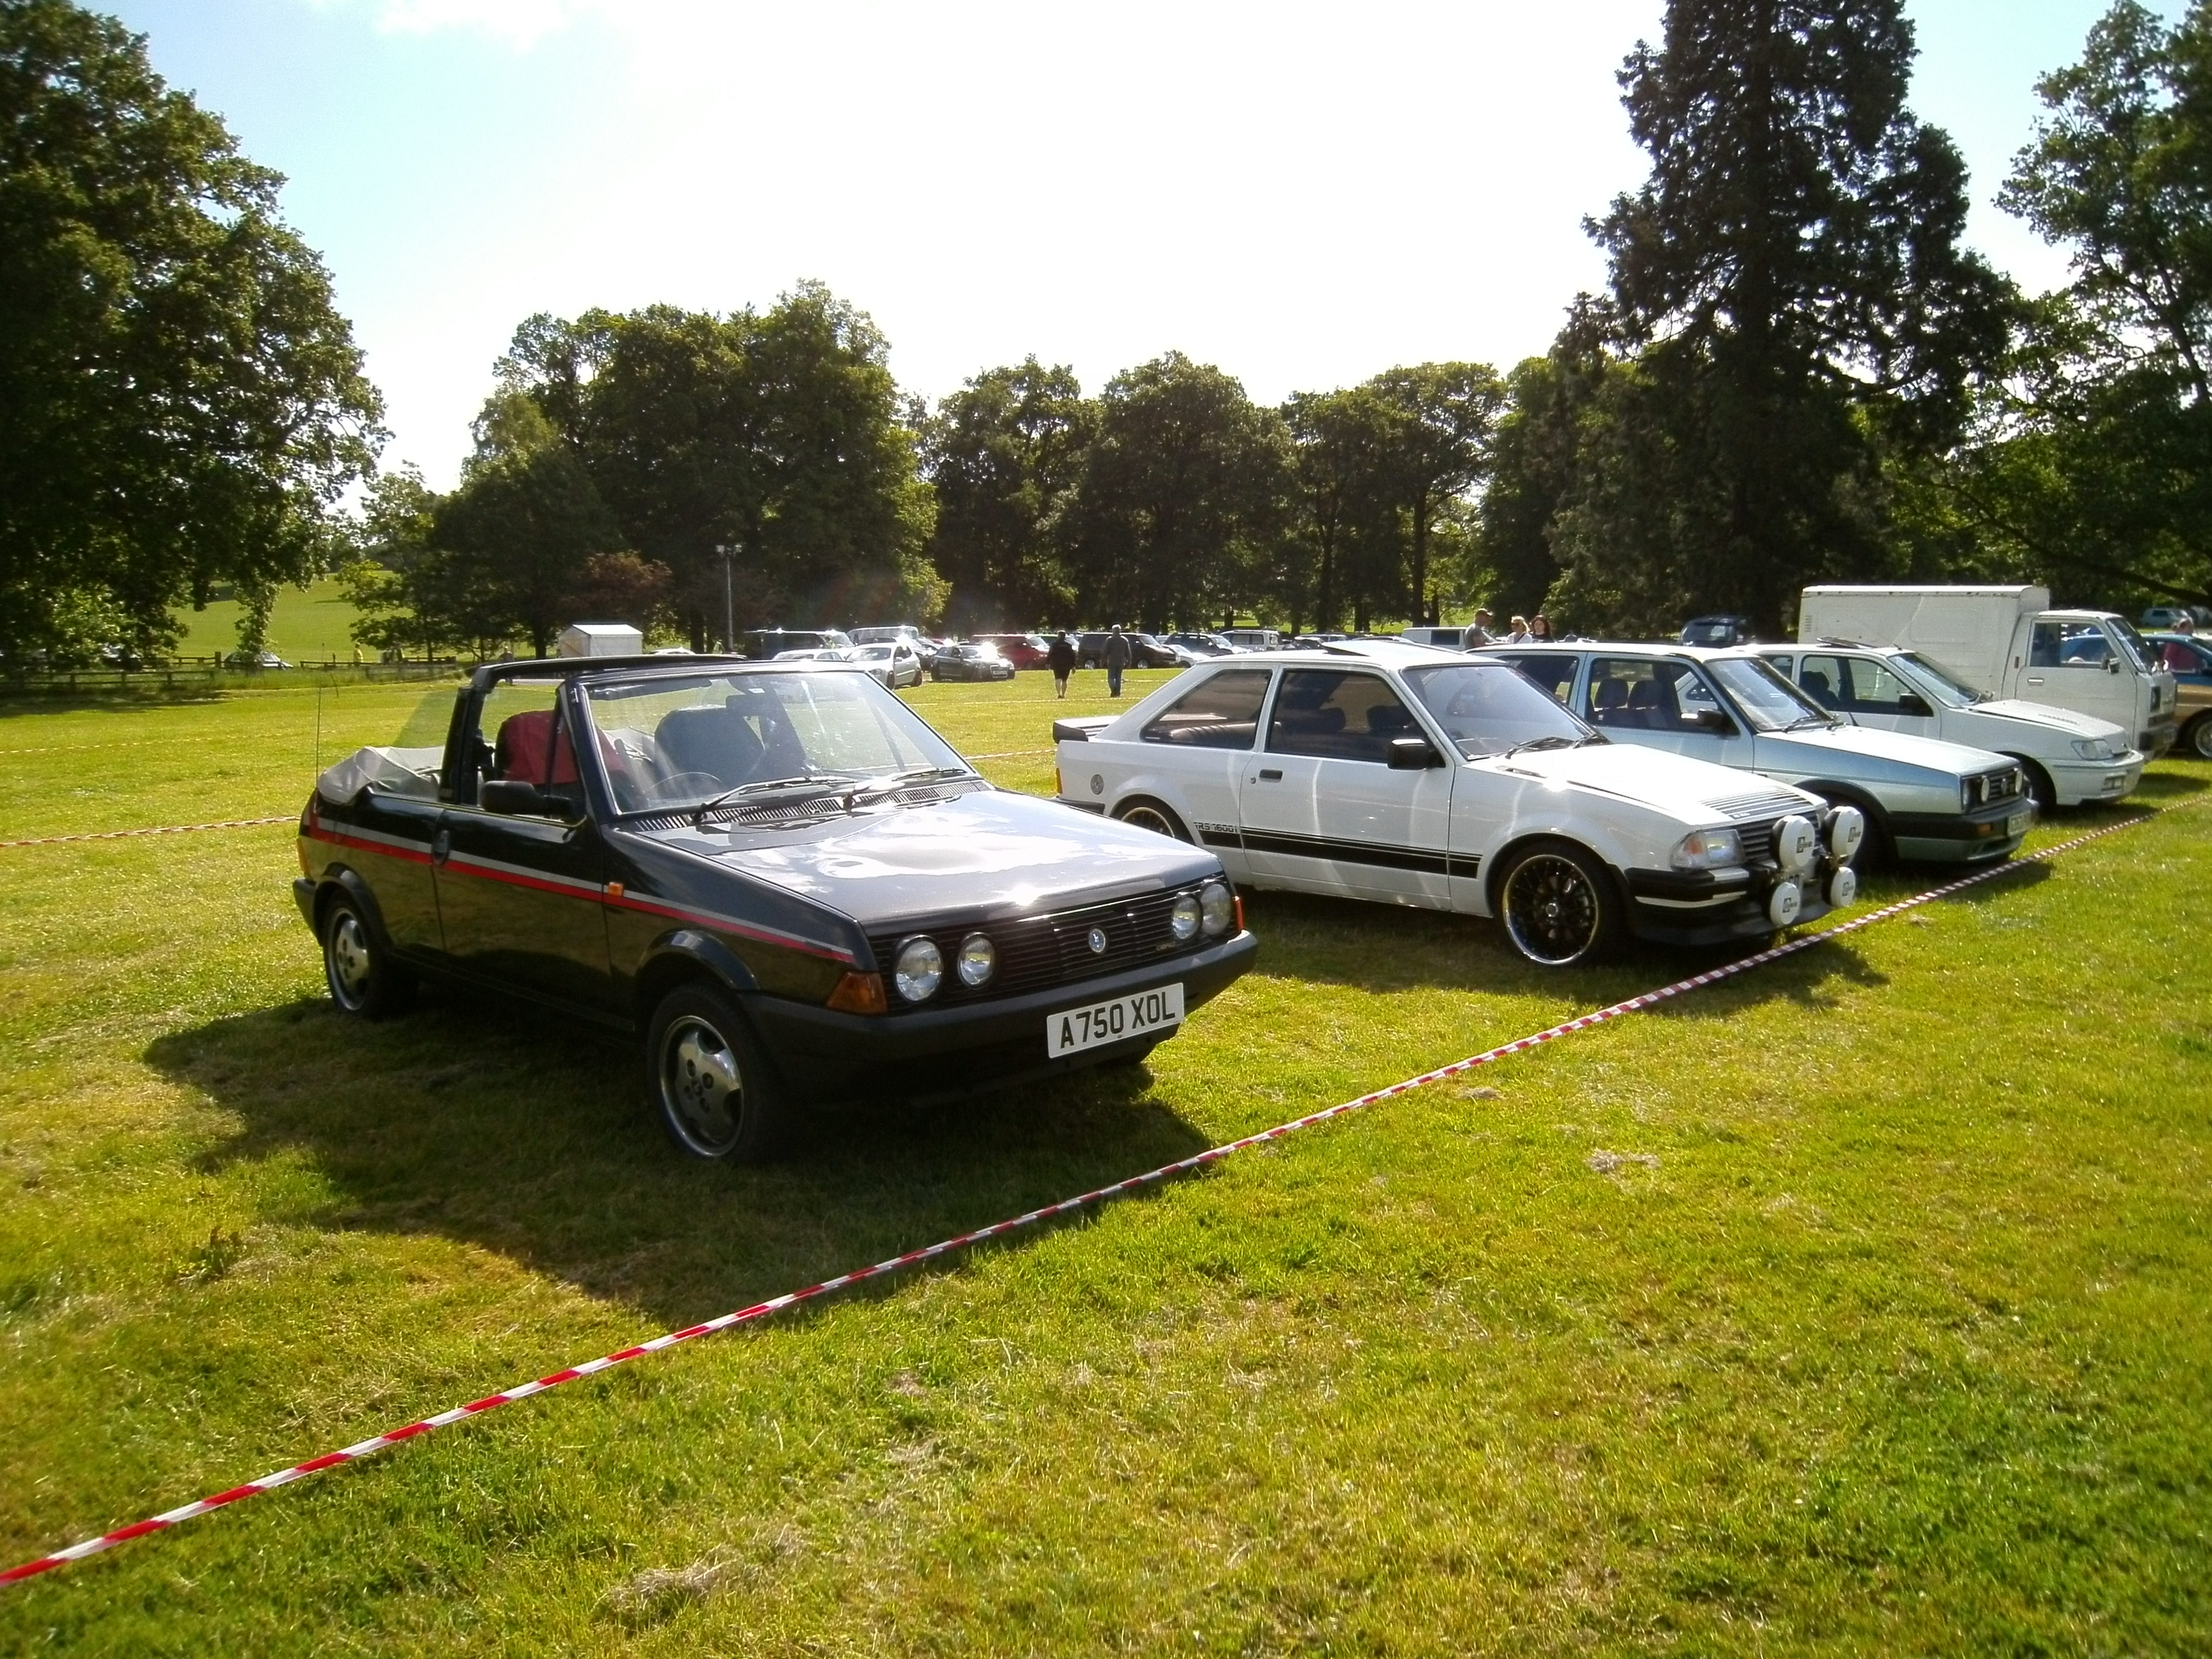 Click image for larger version  Name:!st Show Weston.JPG Views:43 Size:2.28 MB ID:156289